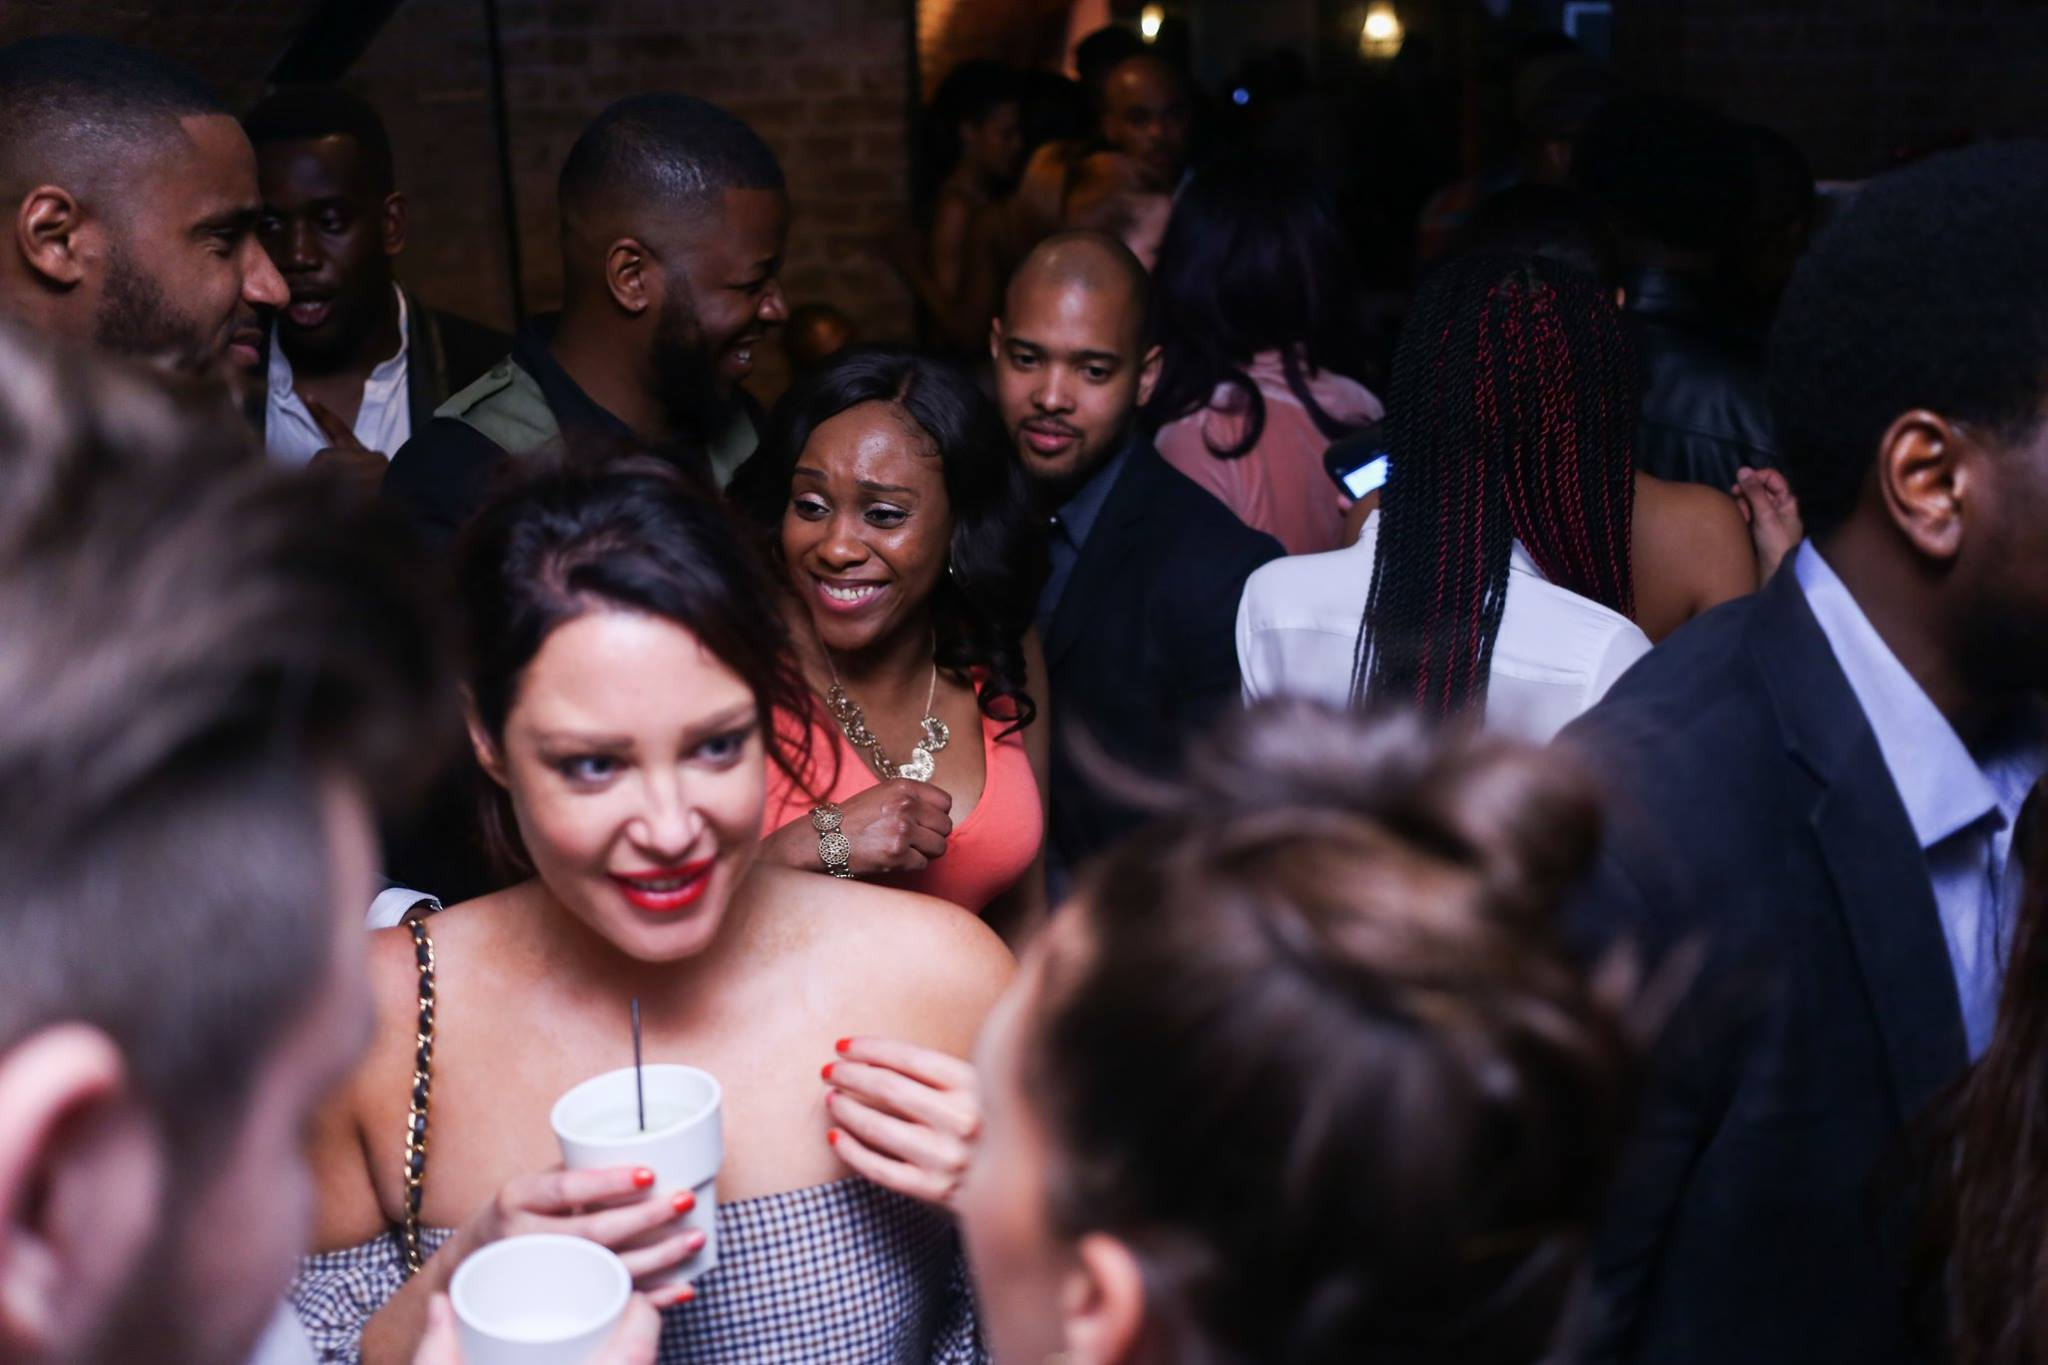 #CityNights: Bowling + Networking Party